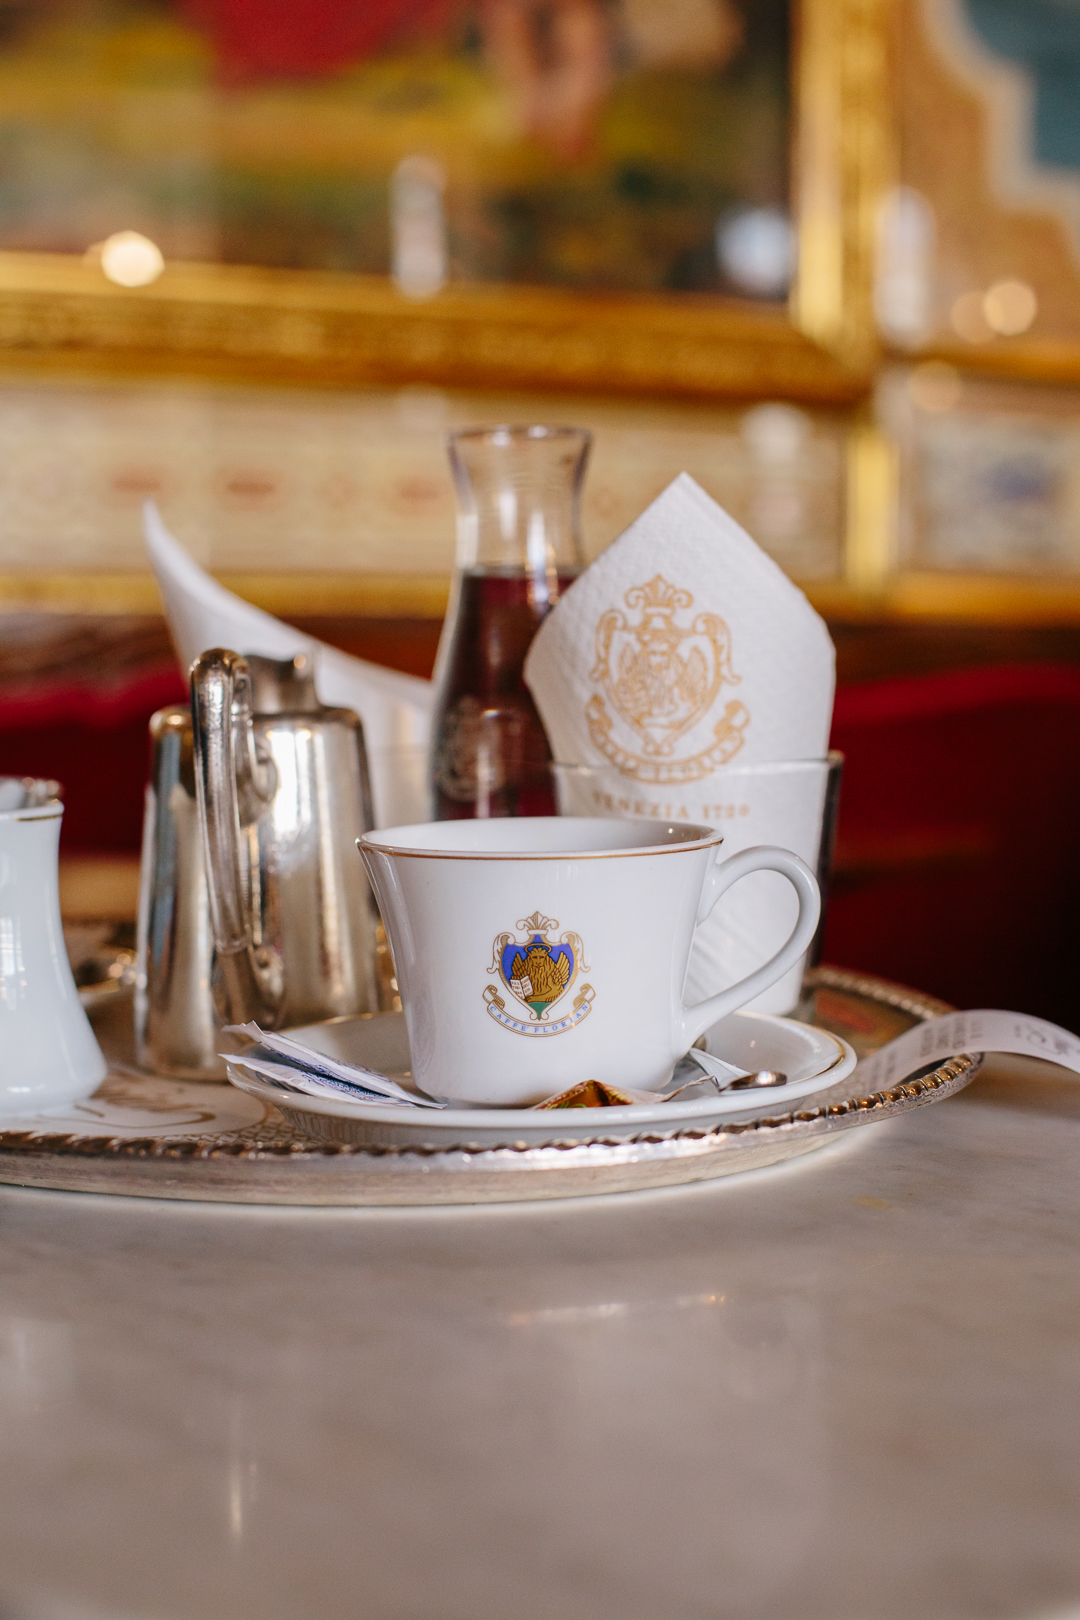 Caffe Florian In Venice Is The World's Oldest Coffee Shop